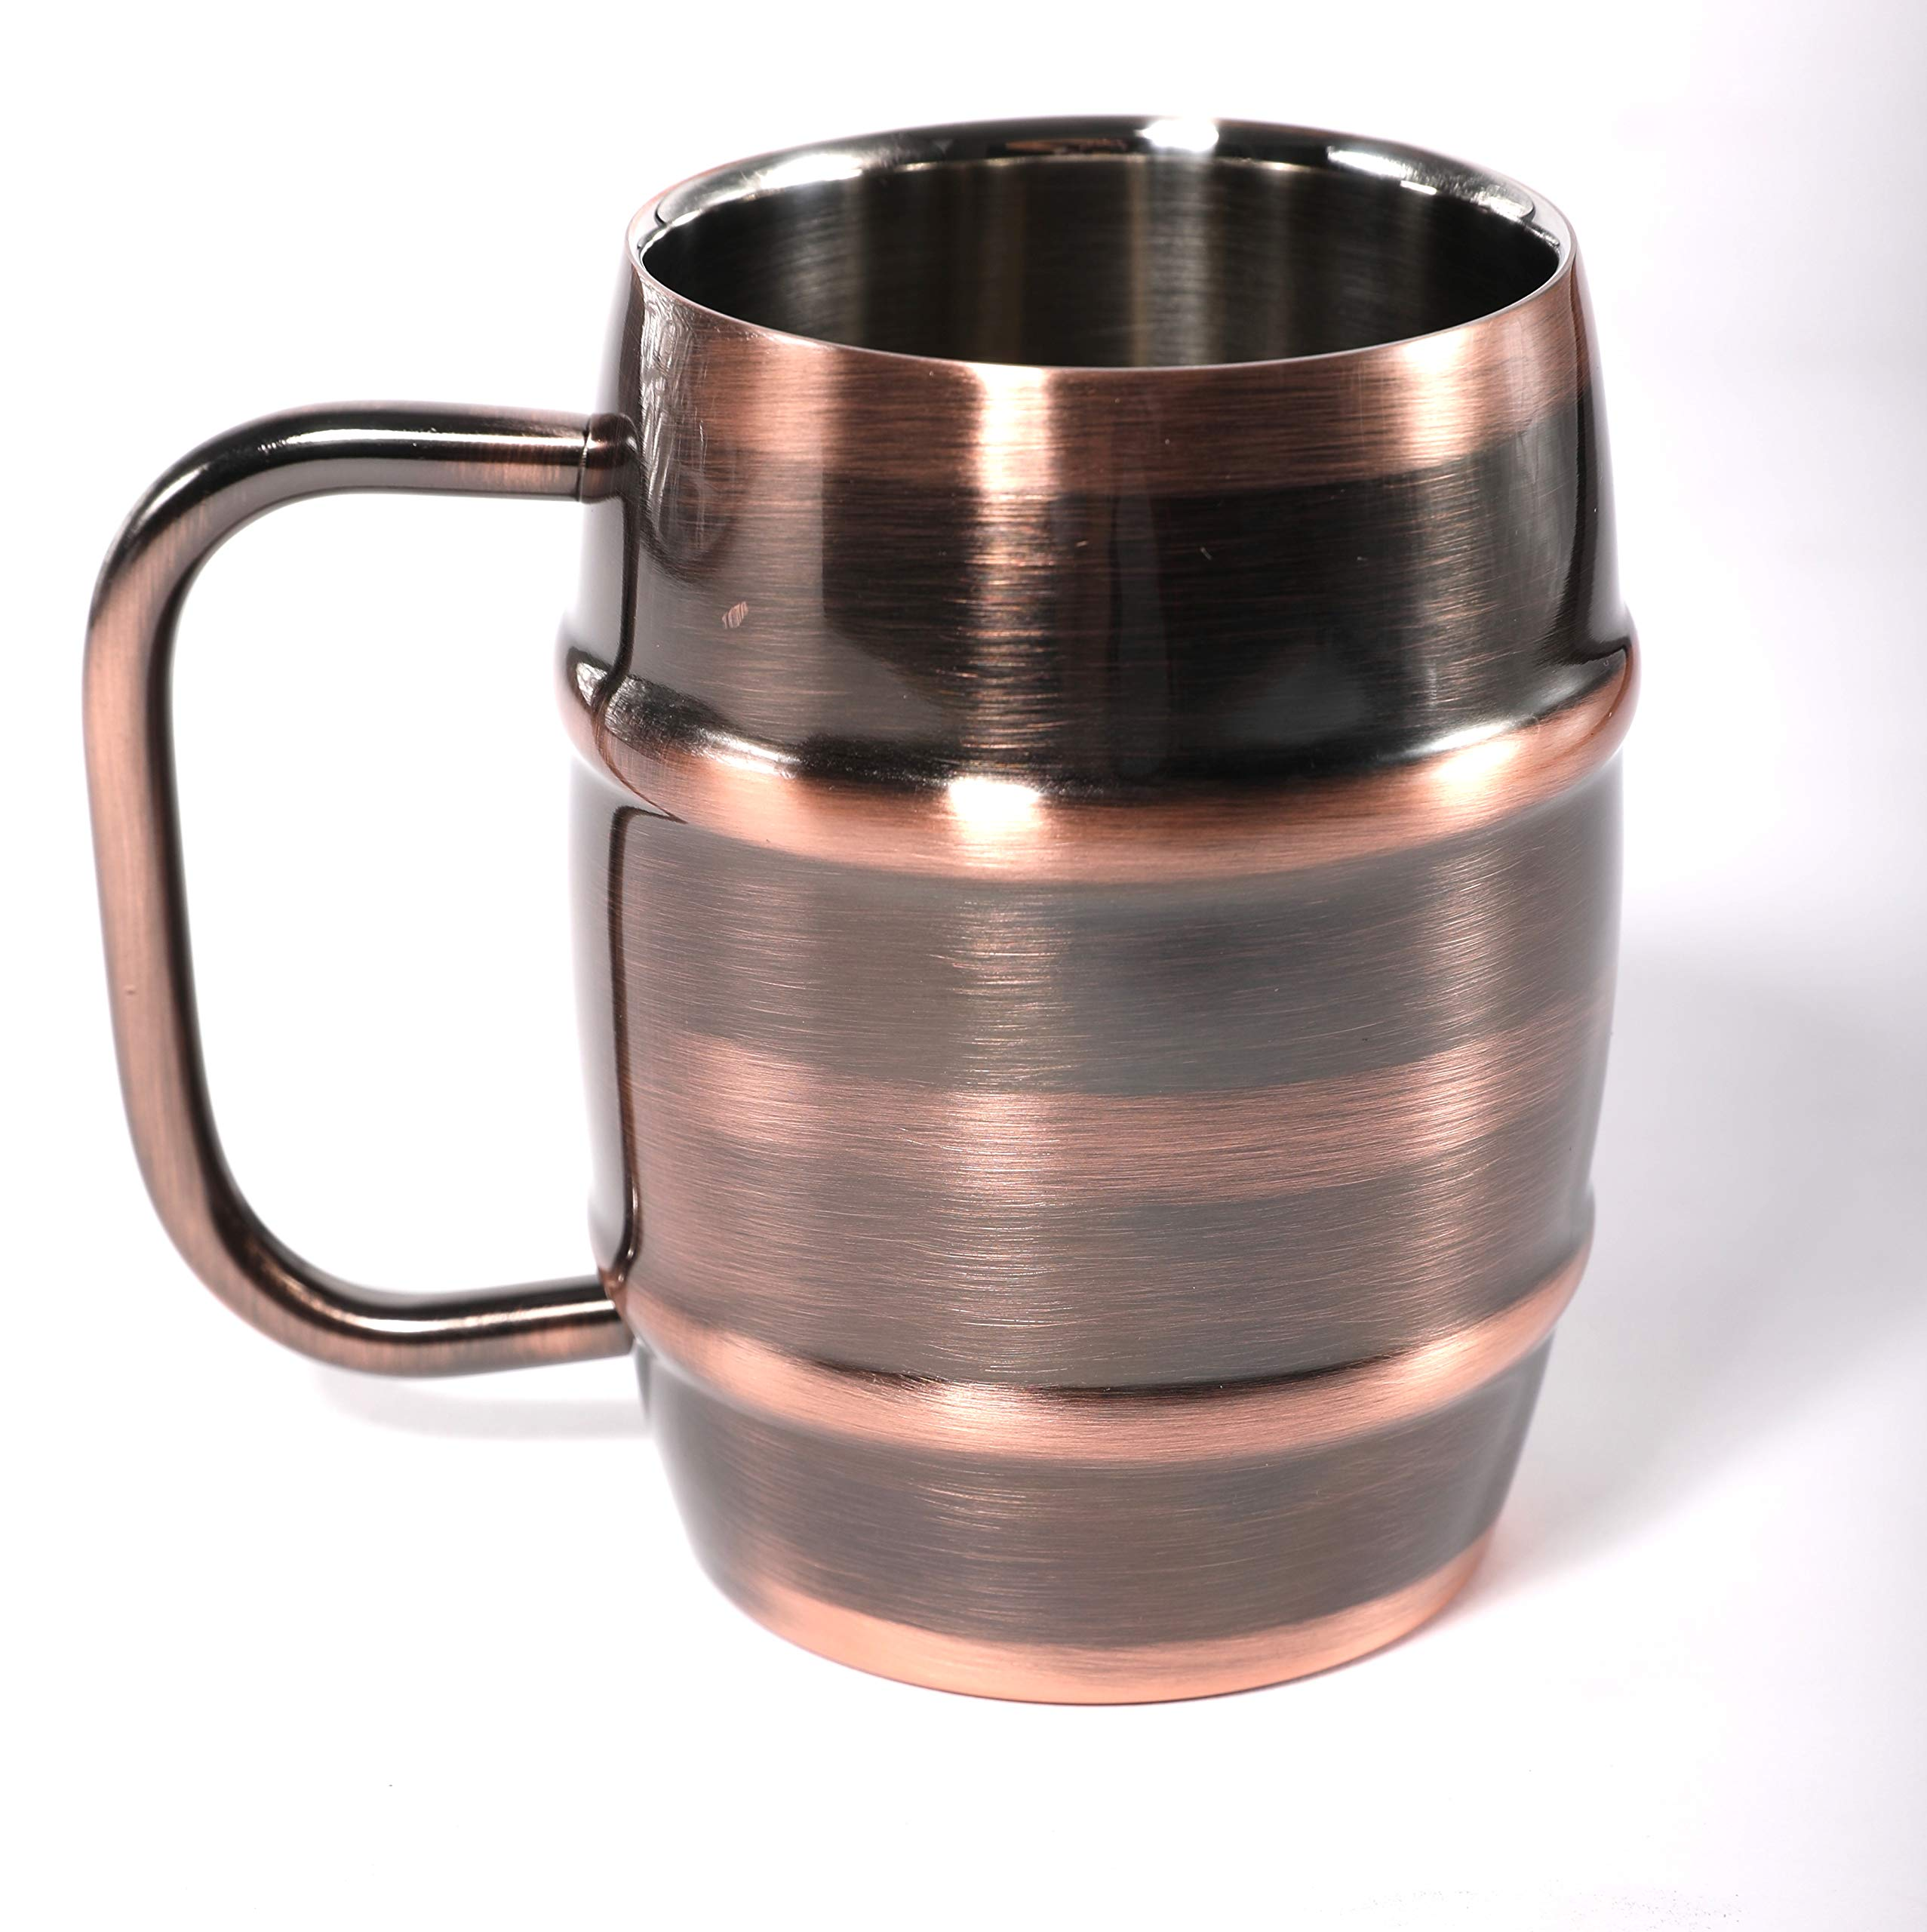 ANVENTI Double Wall Stainless Steel Insulated Coffee Mug (Copper) 400ml 14oz 2PCS/CASE